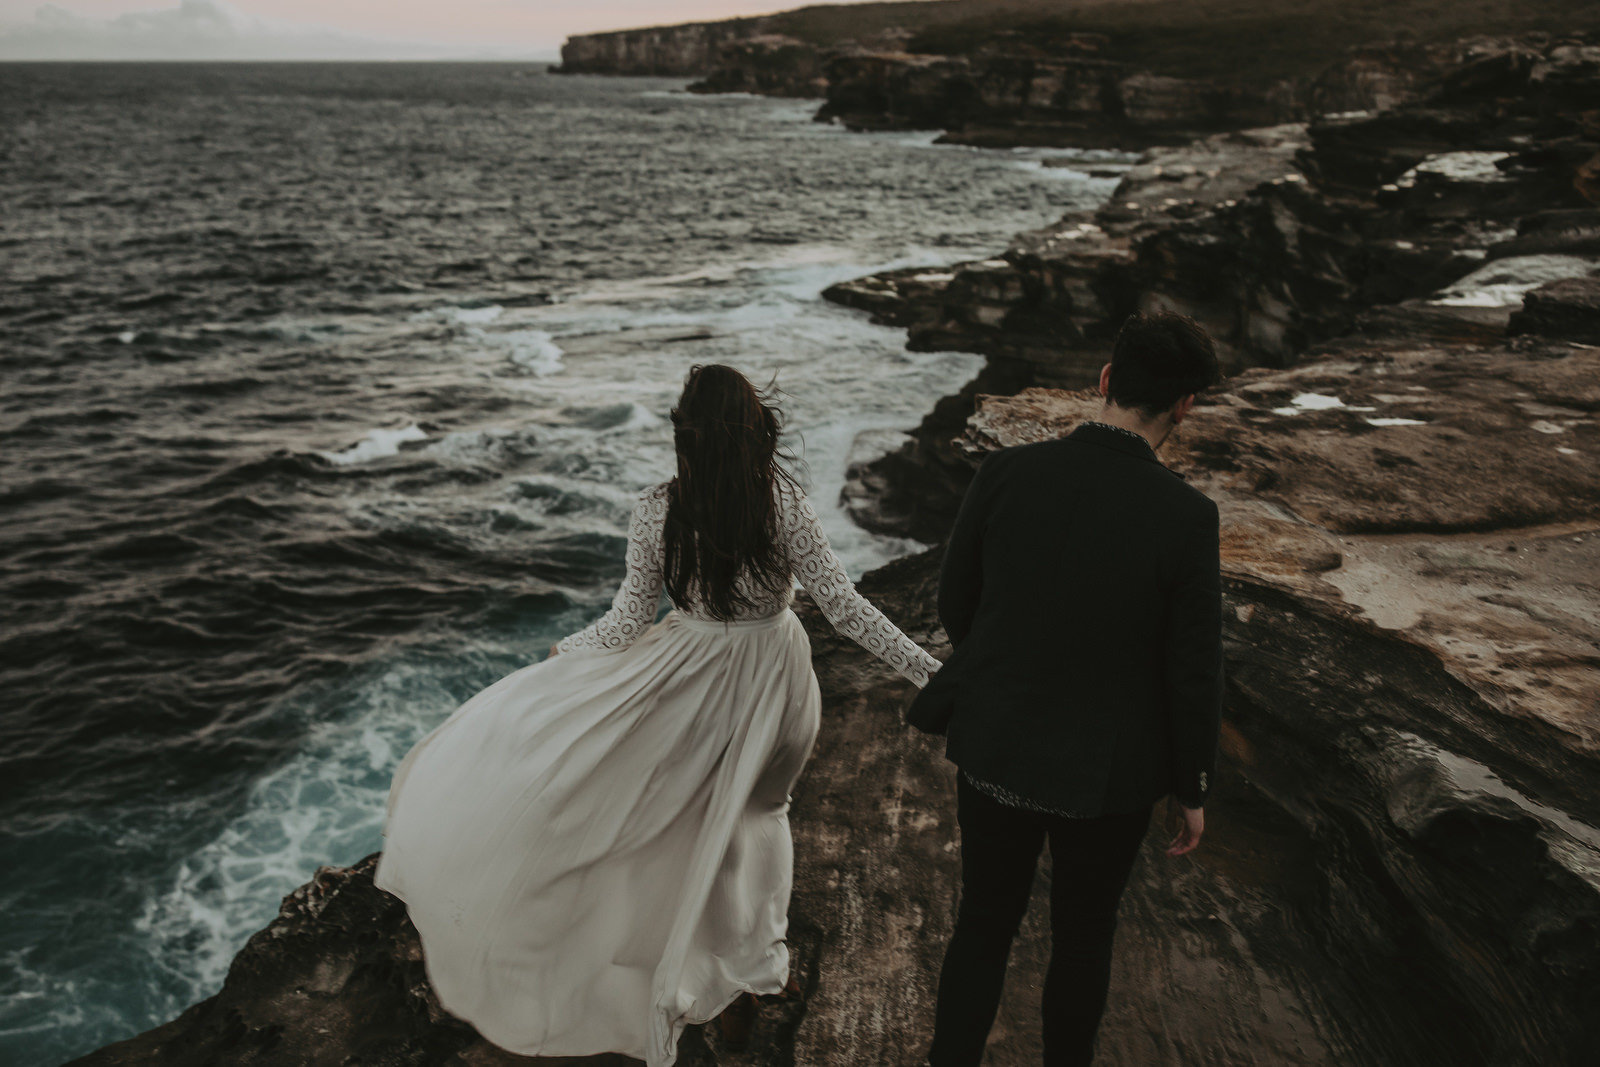 athena-and-camron-sydney-wedding-boho-romance-james-simmons-photography-christian-couple-goals118